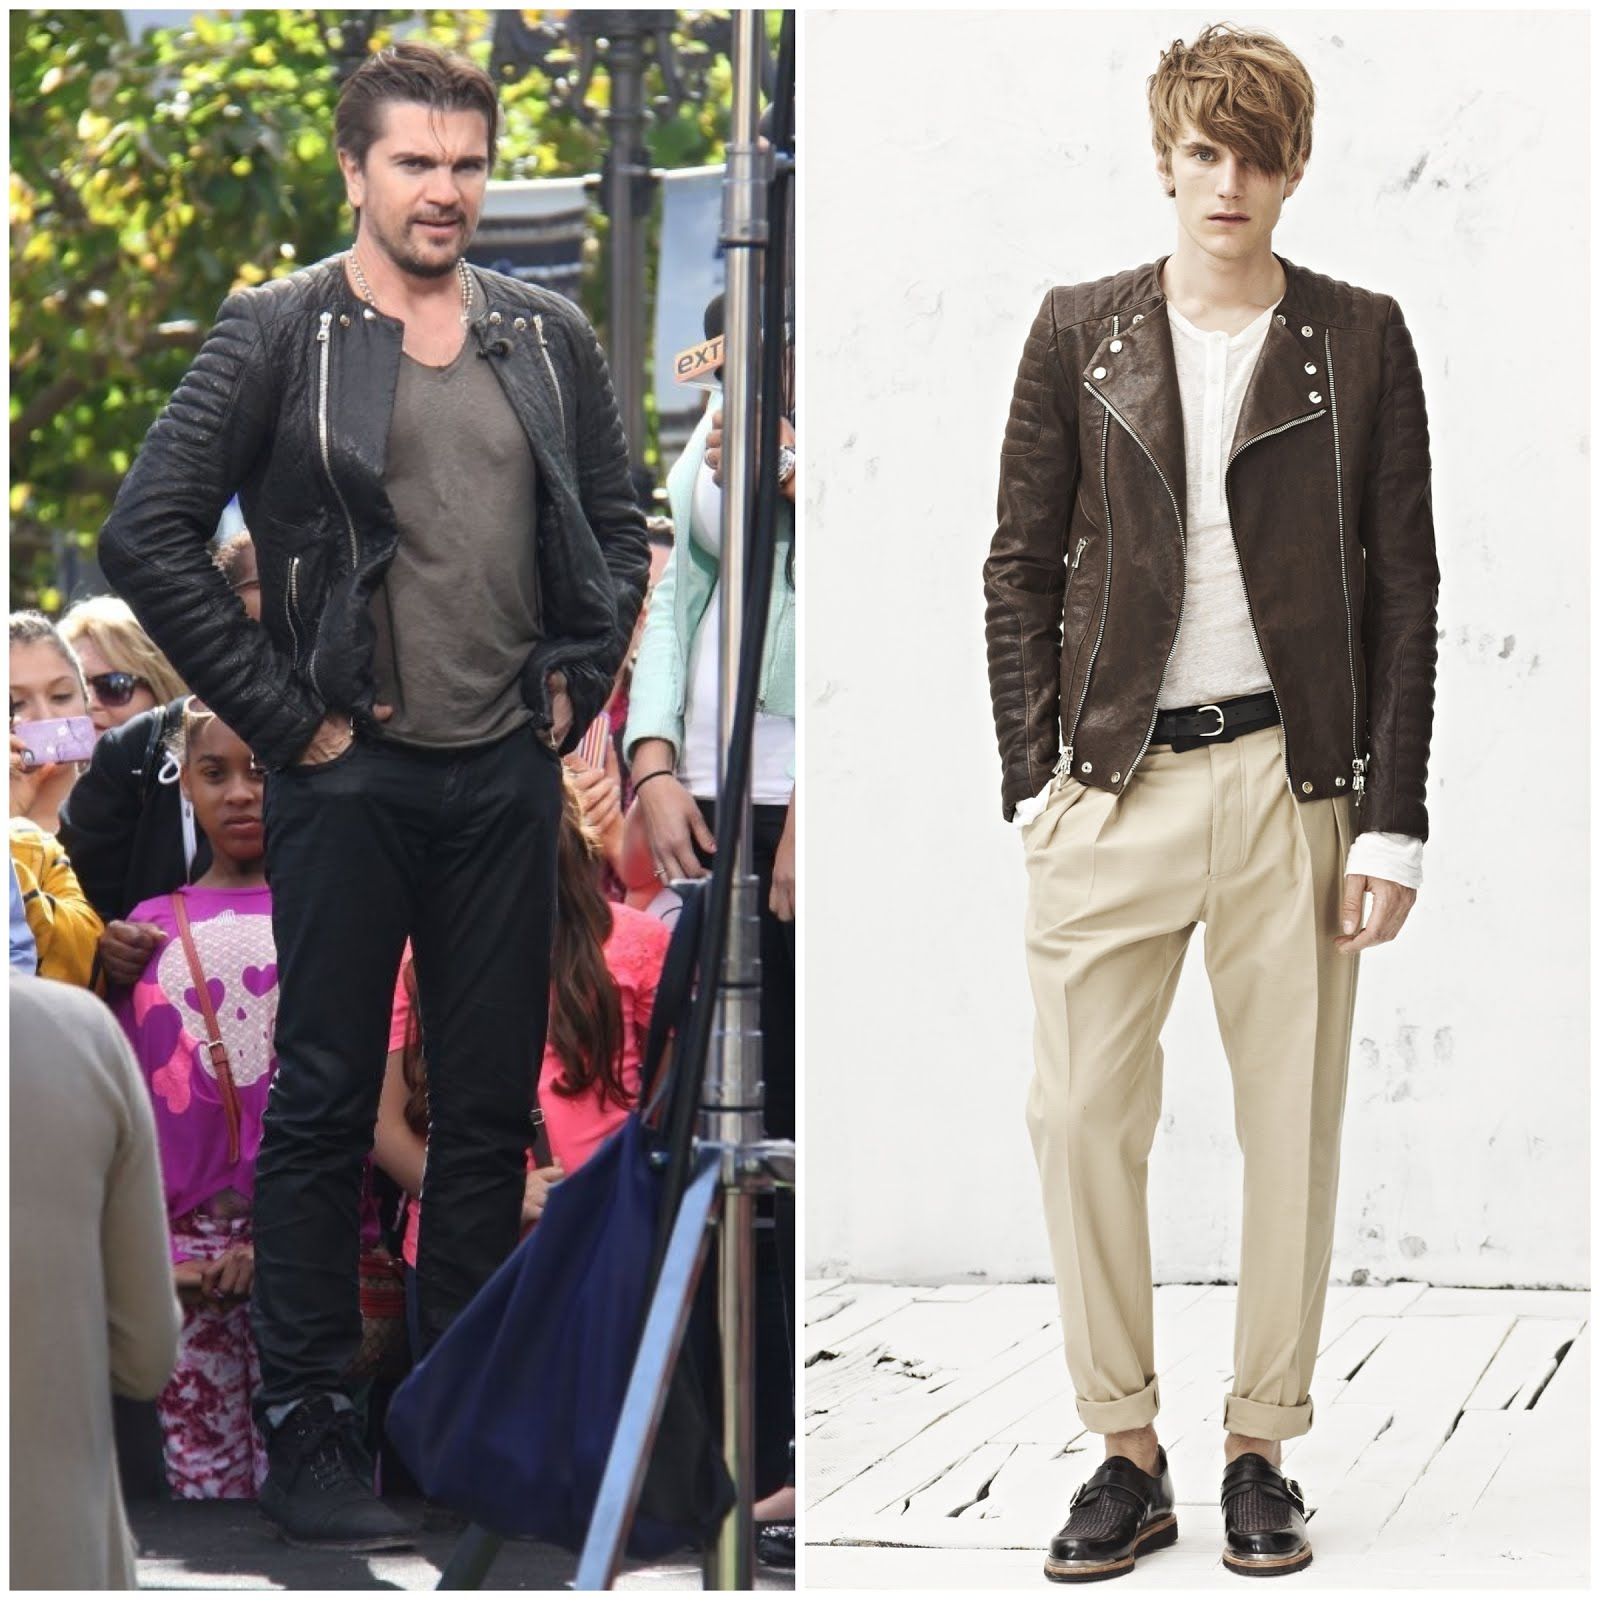 00O00 Menswear Blog Colombian musician Juanes in Balmain Homme biker jacket at The Grove to do an interview for the show EXTRA in Los Angeles, California on April 8, 2013